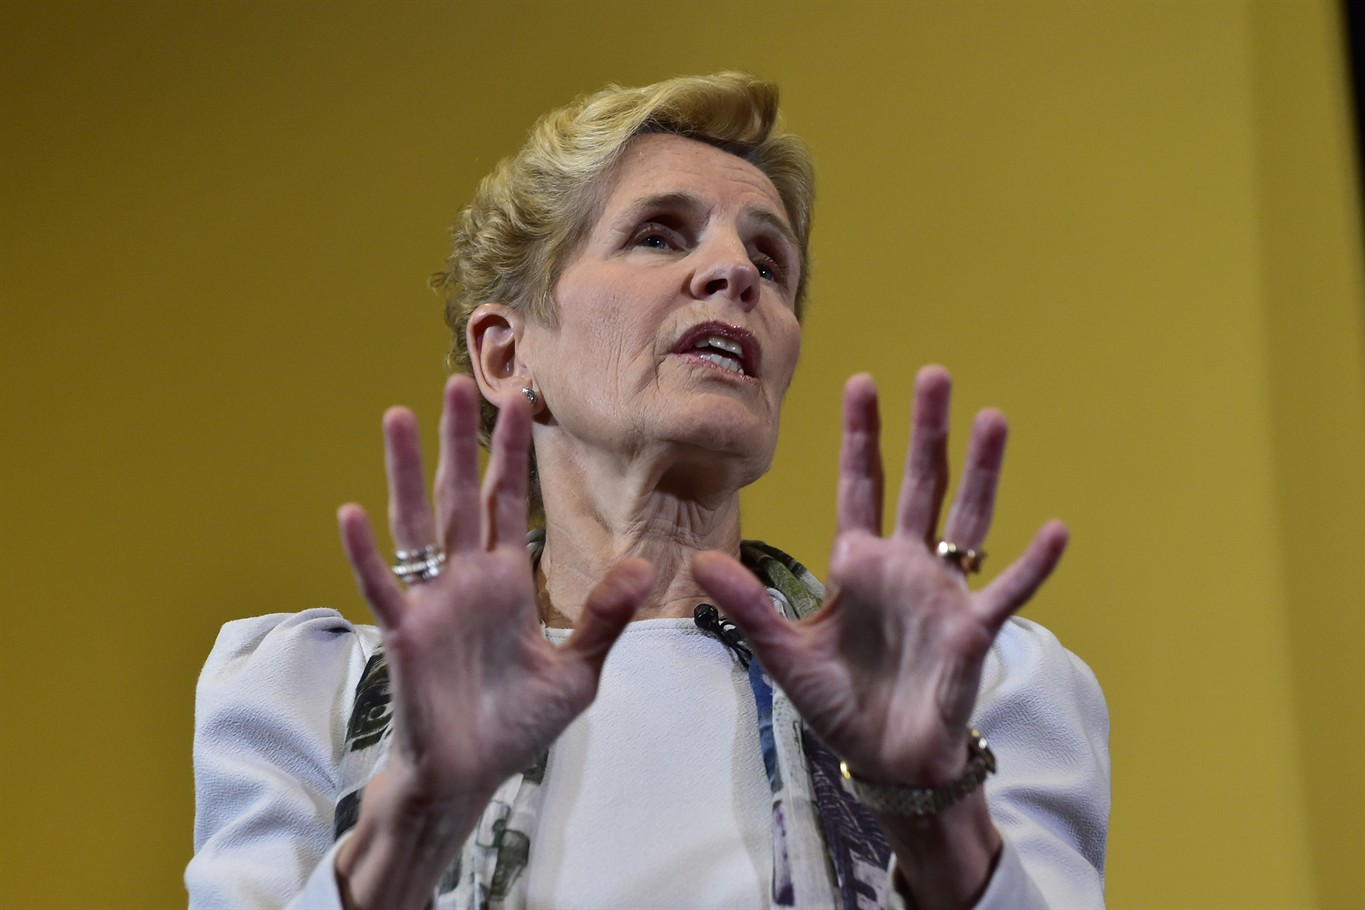 Could Kathleen Wynne lose in her own riding? Poll raises the possibility - CityNews Toronto